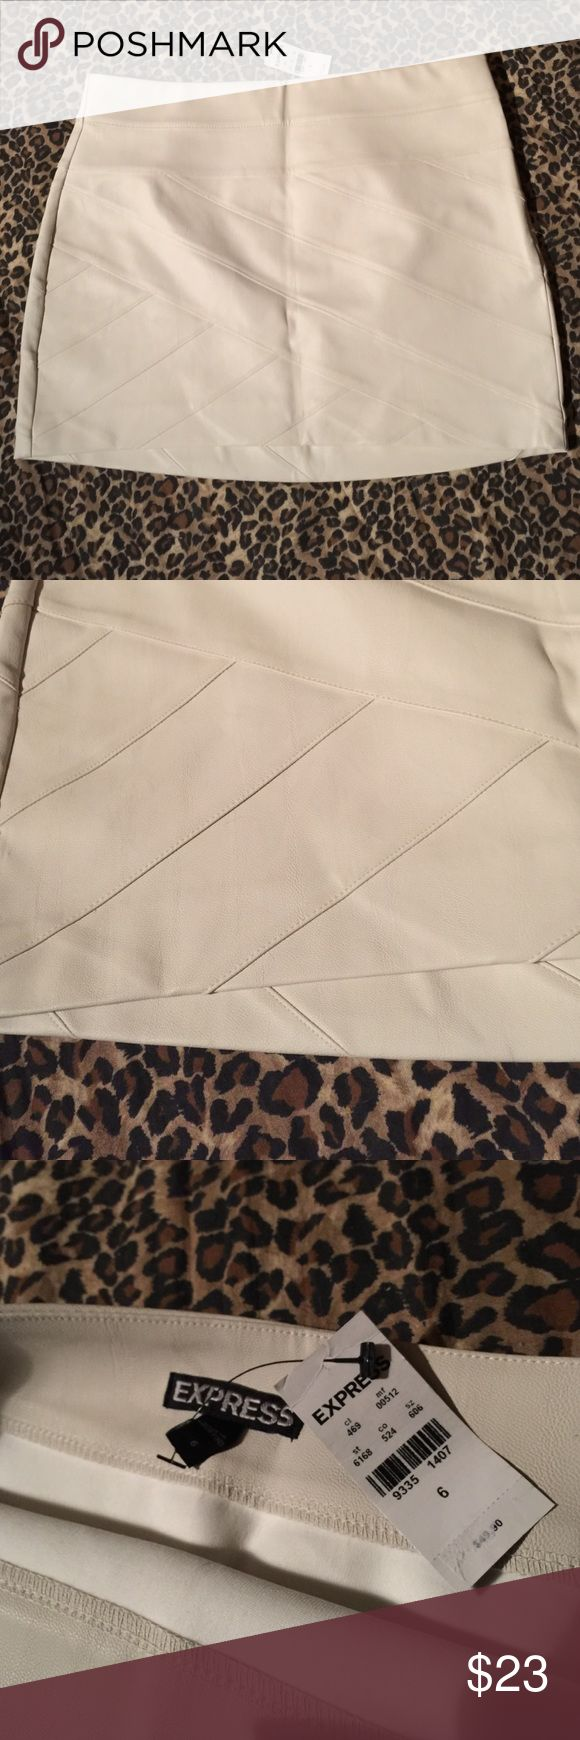 EXPRESS beige/cream faux leather skirt sz. 4 NEAT New with tags! (Retail $49.90) This is really stylish & neat!! A women's size 6 EXPRESS beige/cream faux leather dressy skirt! Above the knee (measures approx. 13.5 in. In the front & approx. 14.5 in in the back) a NEAT patchwork lined design this is super comfy soft like faux leather & is a satin like inside lining. This zips up the side (hidden) & is just pretty pretty!! A great skirt for fall & winter & would look great w/your favorite…